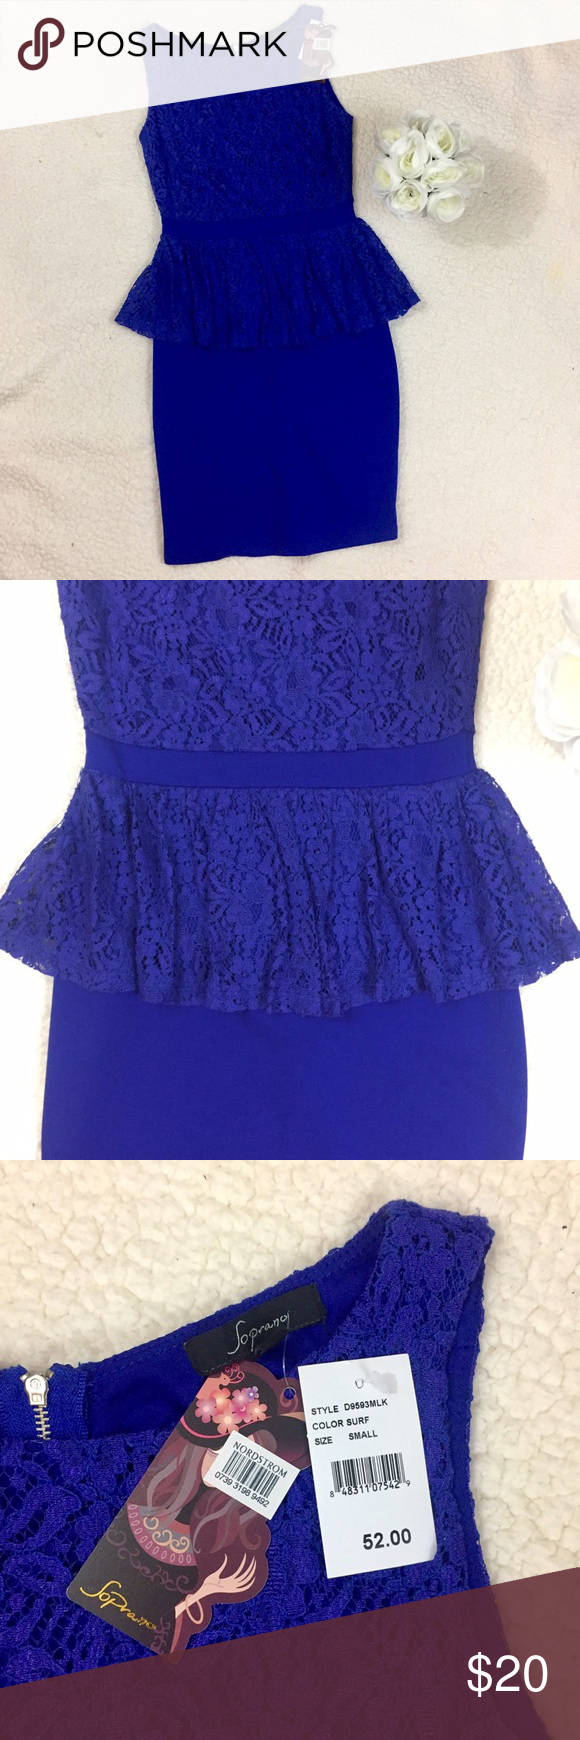 NWT Lace Peplum Nordstrom Dress Beautiful dress! Perfect for work ...